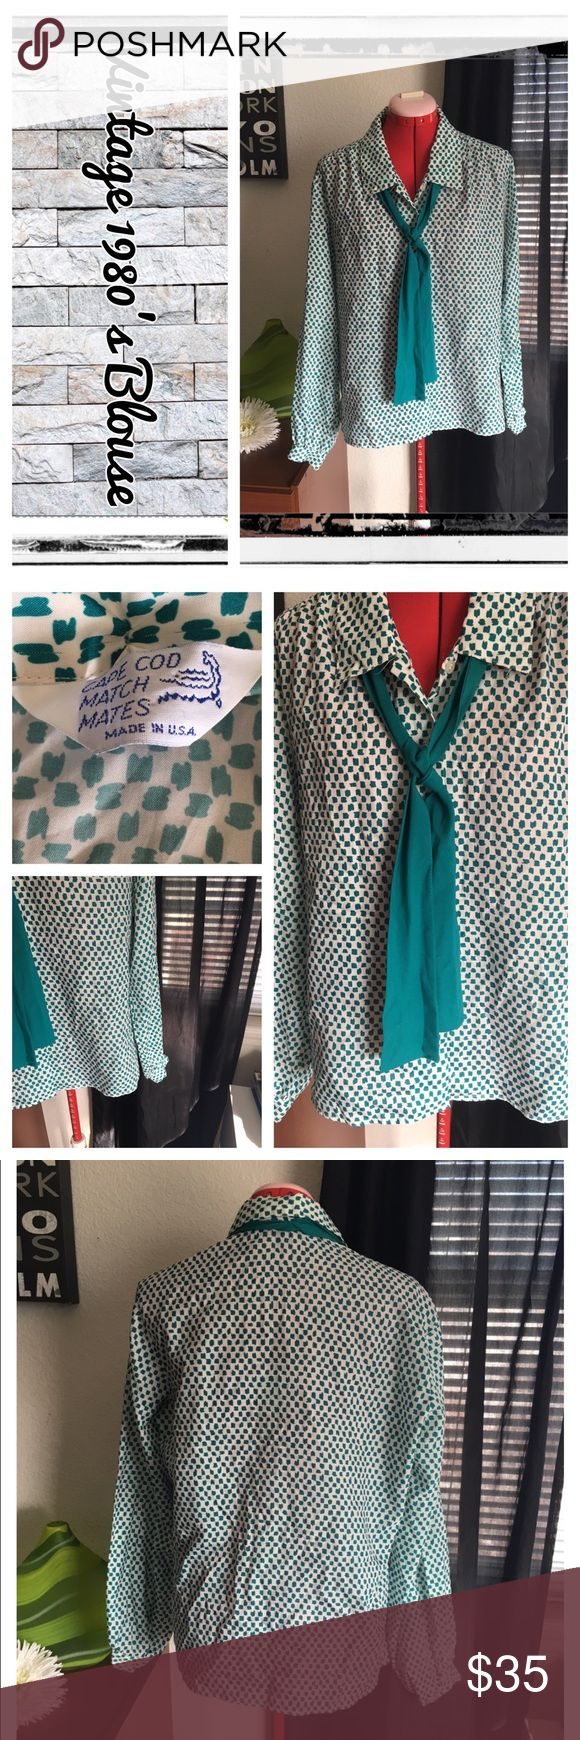 Vintage 1980's button down blouse w/neck tie No flaws, steam cleaned. EUC.                                 REASONABLE OFFERS ONLY- -Smoke and pet free - I try to stay around 75% off MSRP; please keep this in mind when making offers.  -I do not model anything; everything looks different on everyone and I don't wasn't too Jade that. I will provide measurements if needed.  -NO HOLDS, NO TRADES, POSH RULES ONLY! Vintage Tops Button Down Shirts